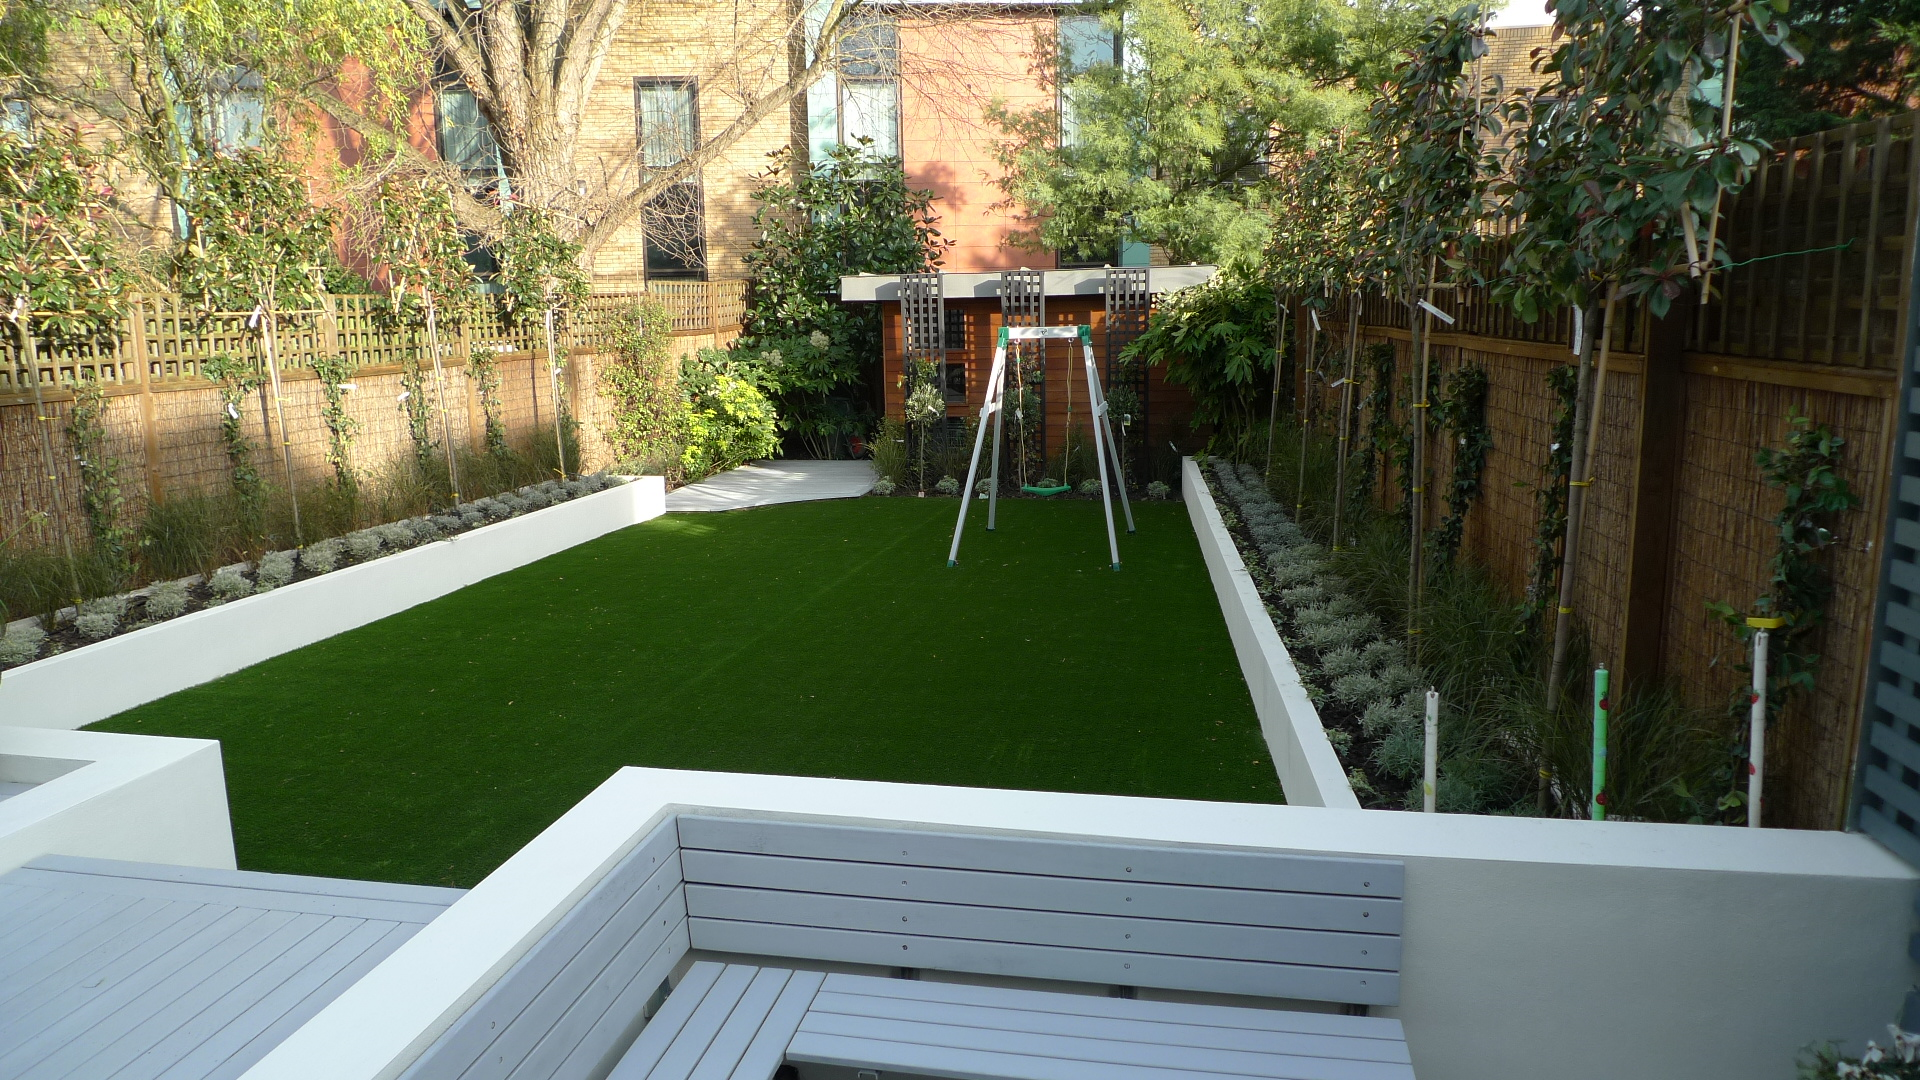 Modern garden design ideas london london garden design for Garden design plans uk